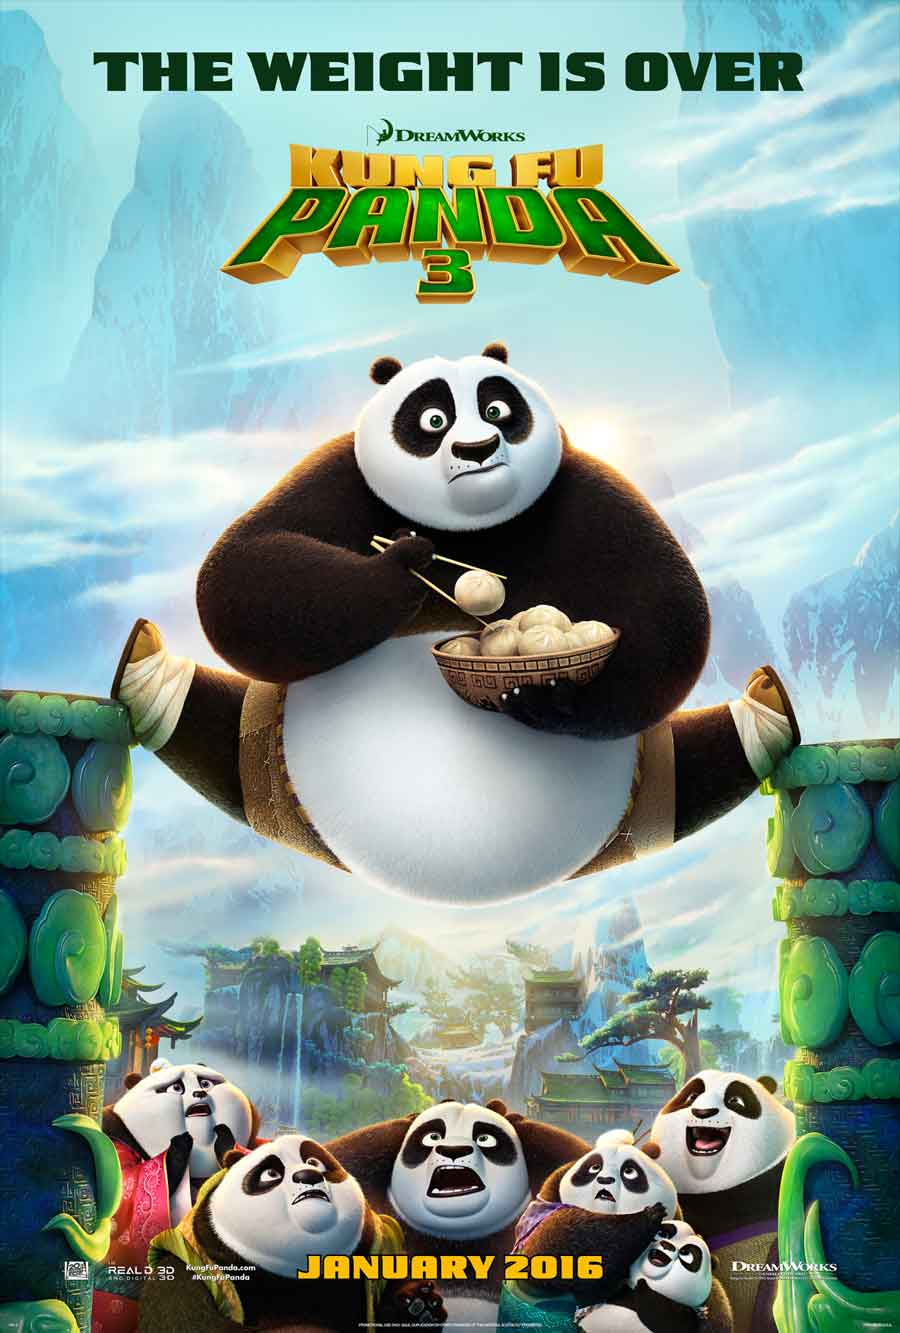 Poster for Kung Fu Panda 3